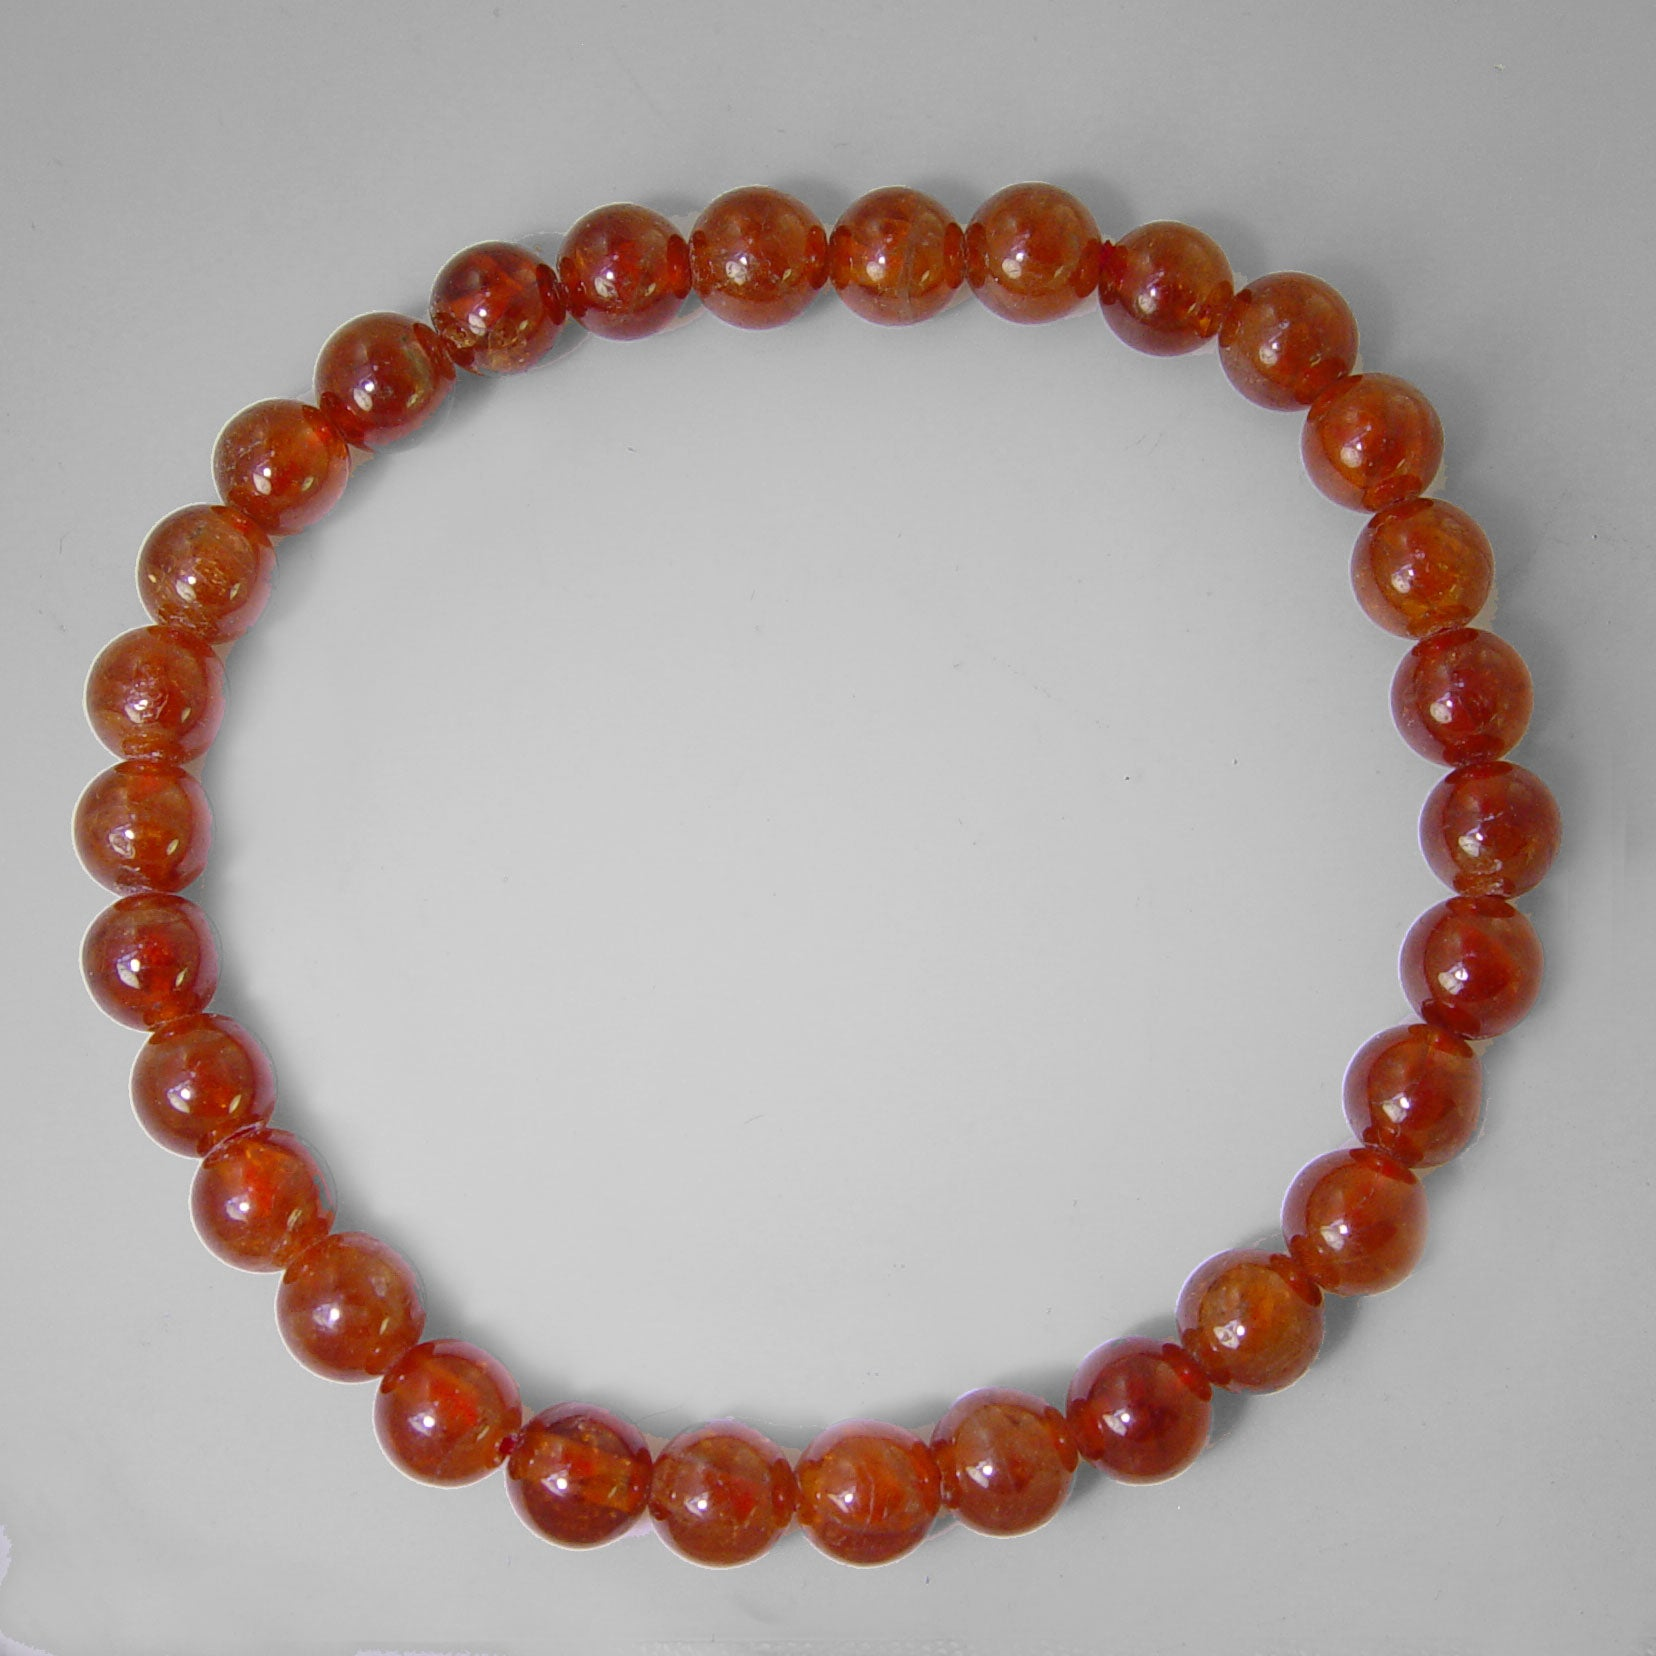 Hessonite Garnet Stretch Bracelet - 75 ct